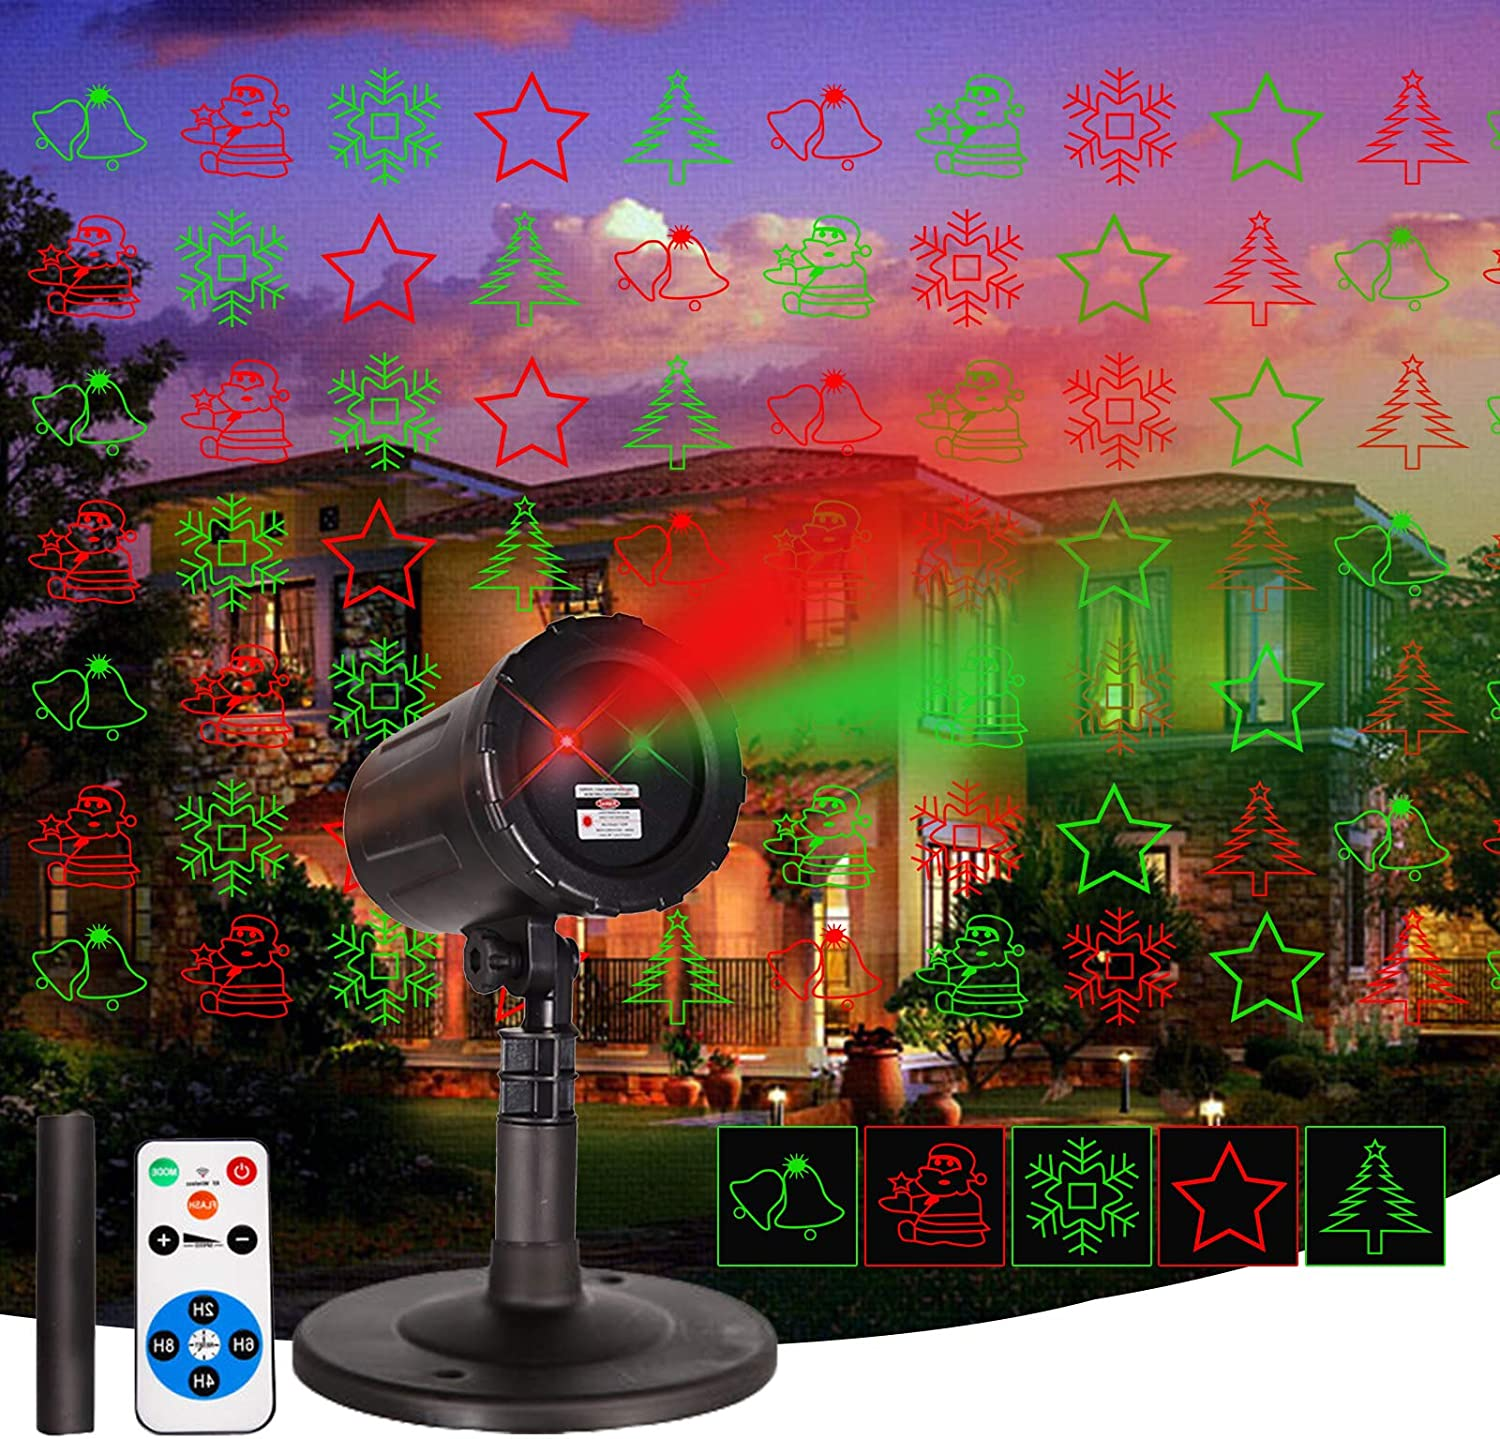 Laser Christmas ProjectorLights Outdoor Waterproof Projector Lights Garden Christmas Lights Star Show with Christmas Decorative Pattern Sand Remote Control for Indoor Outdoor GardenPatio Wall